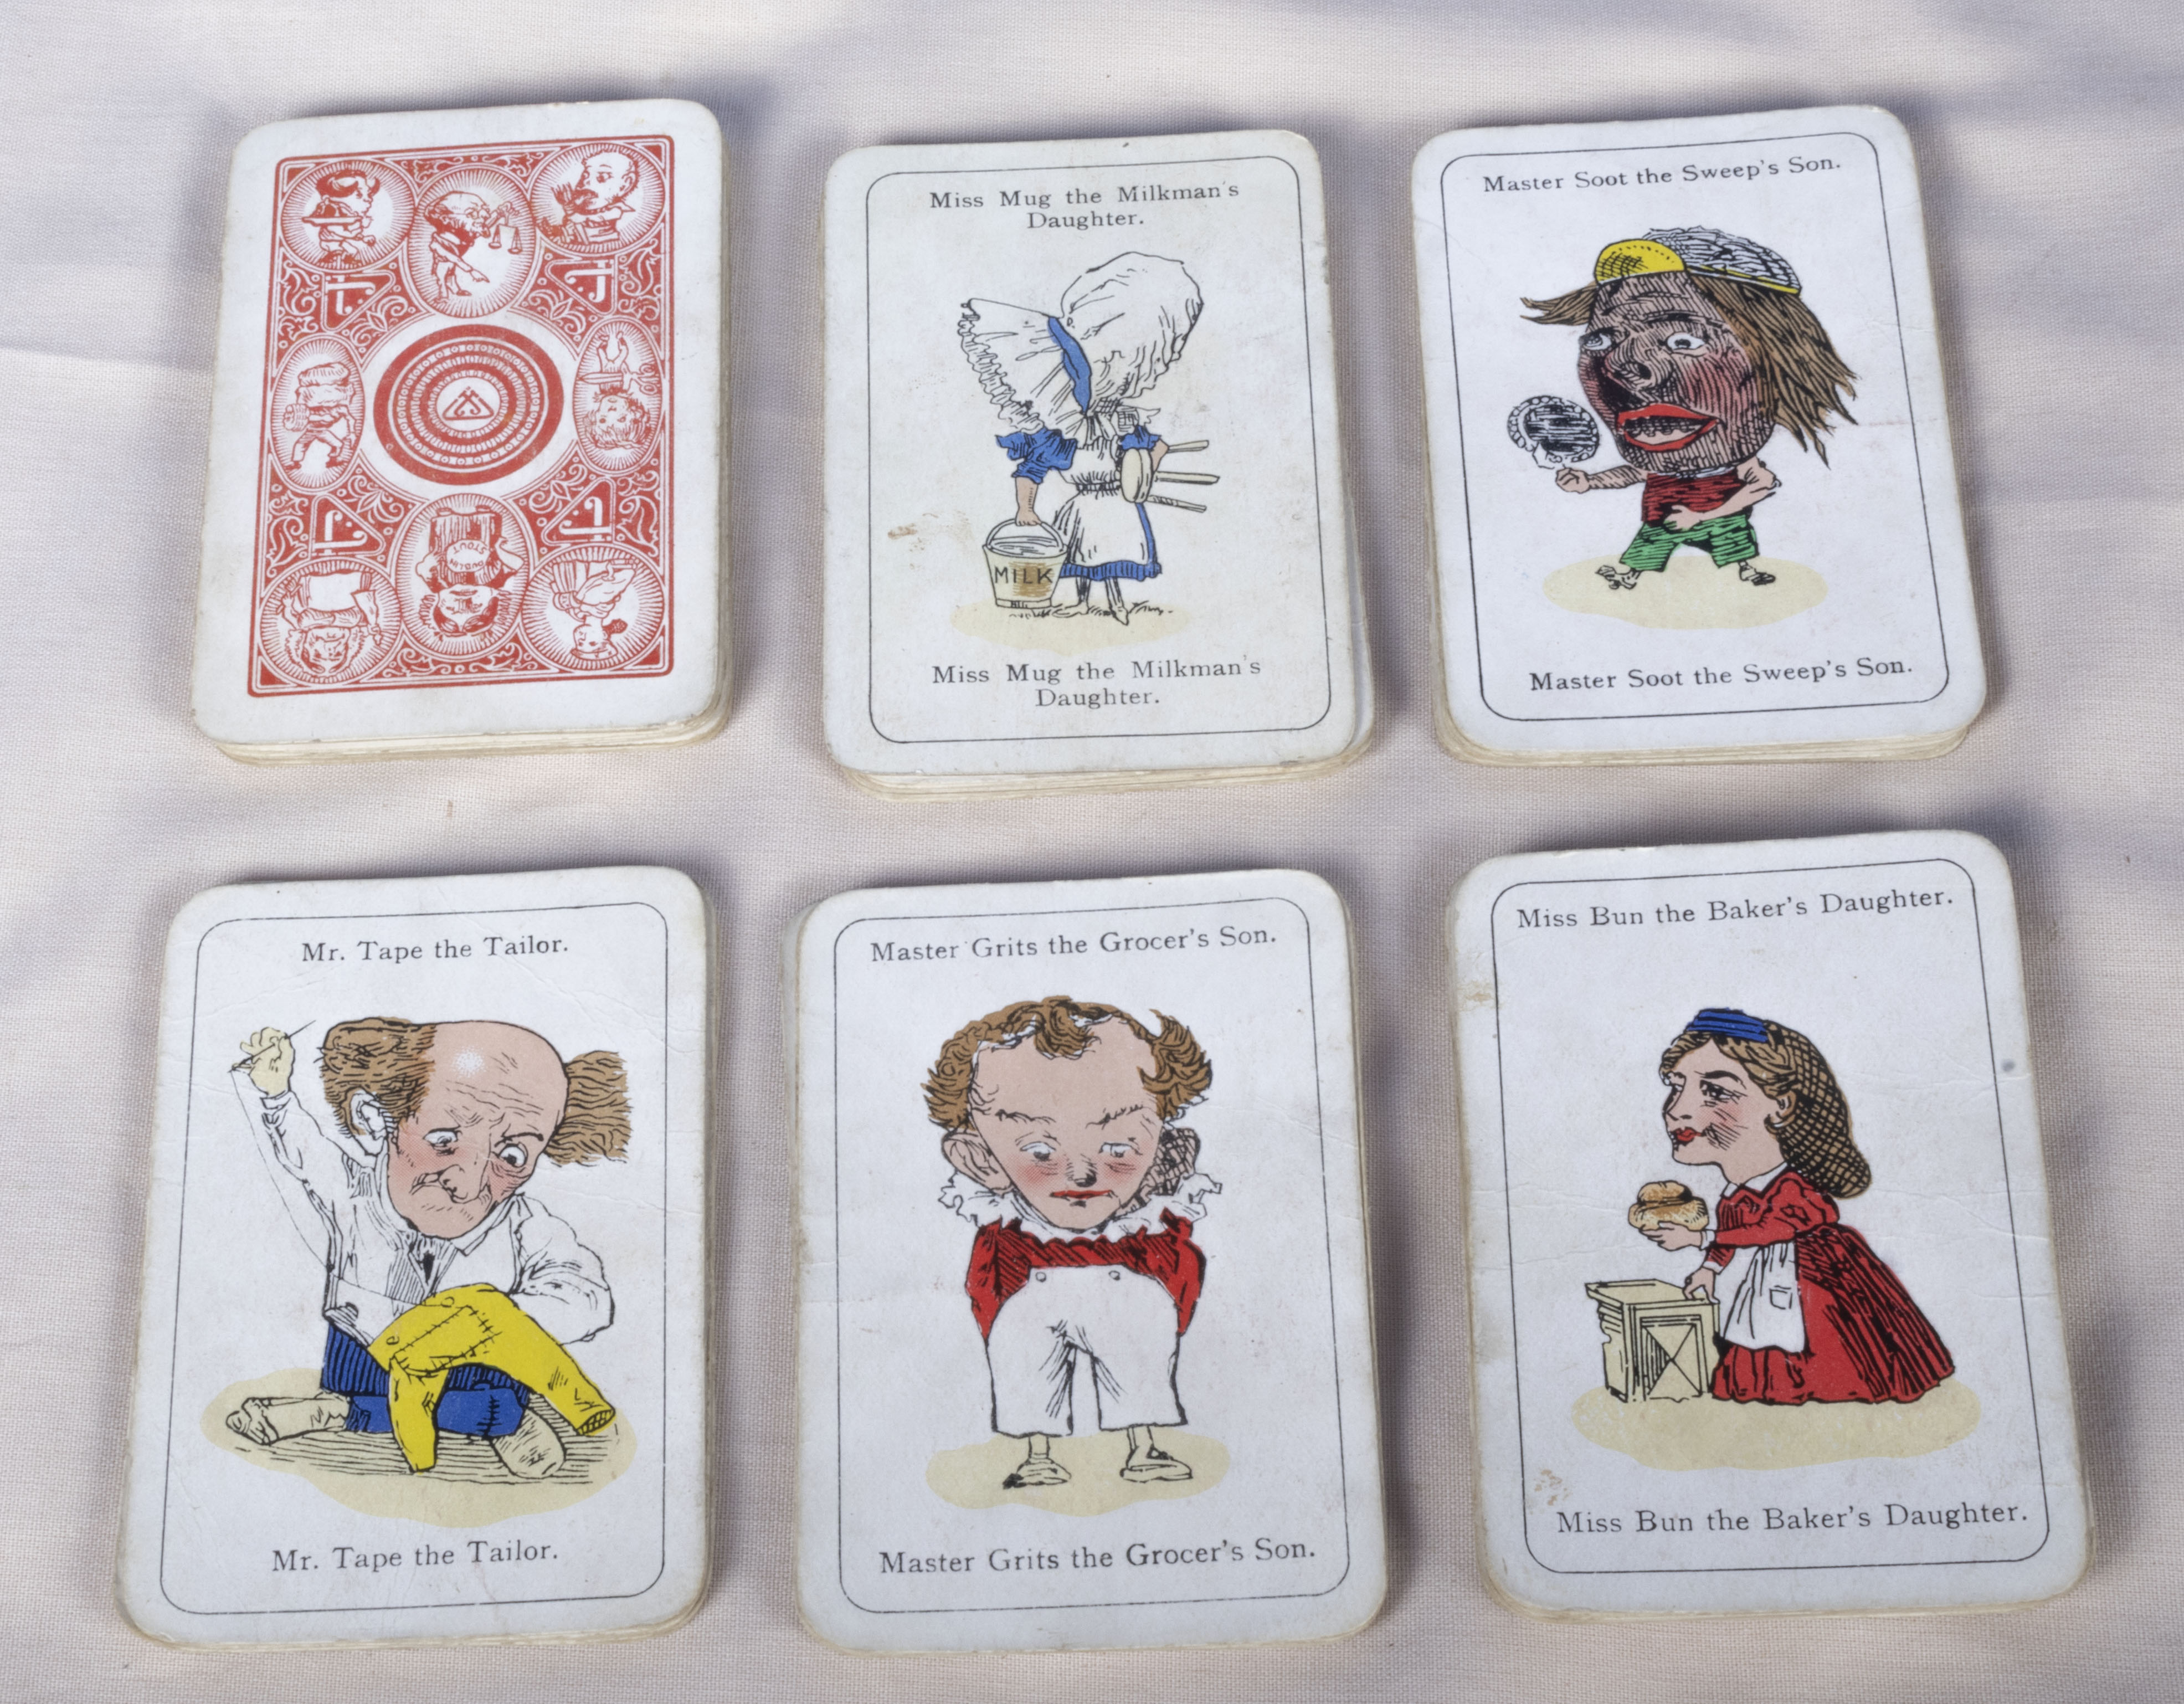 Set 49 vintage comical playing cards various characters, Master Mug the Milkman's son/Mrs Bun the